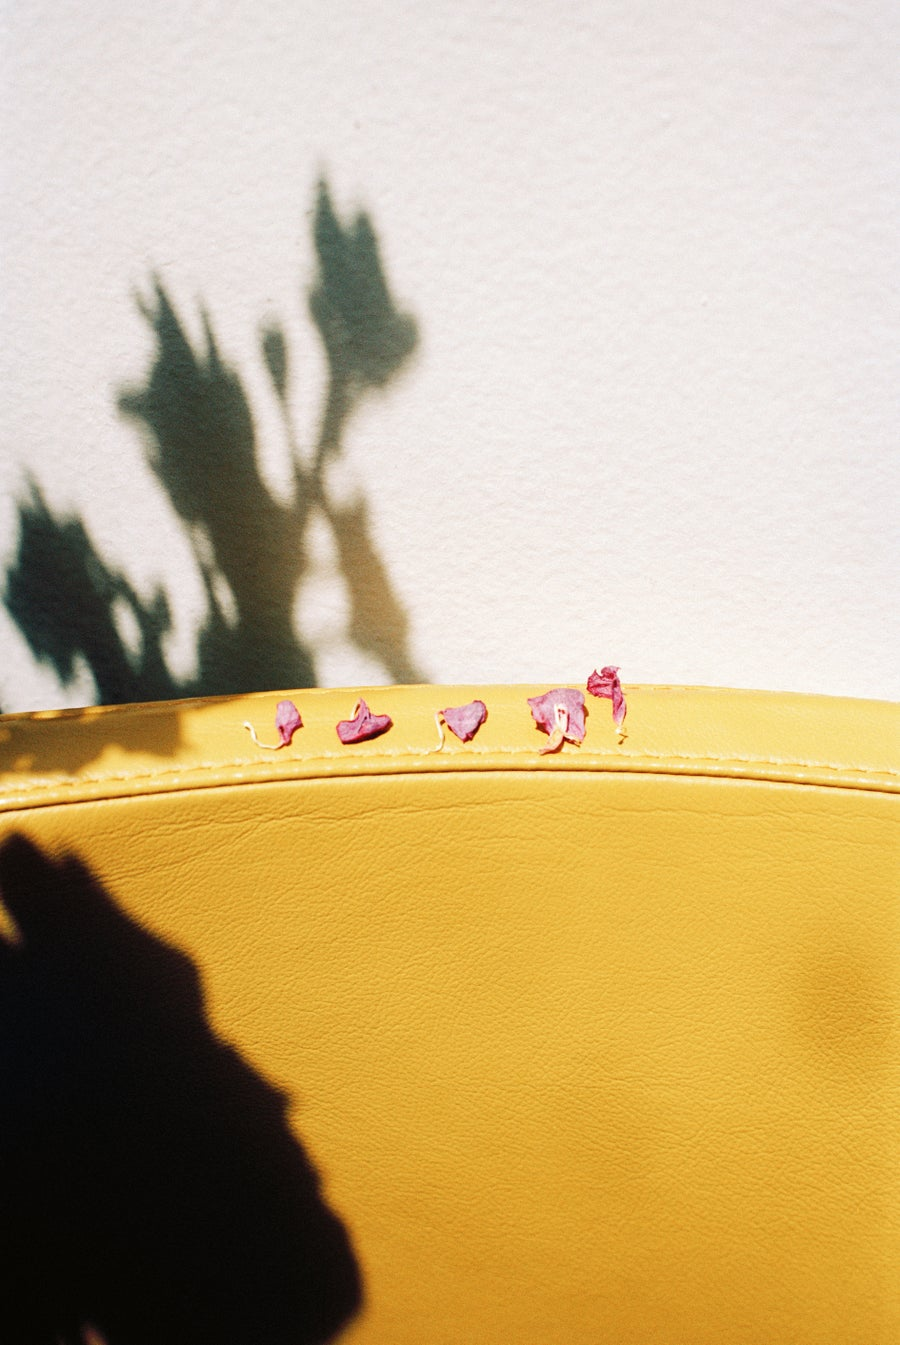 Image of Yellow chair and pink petals